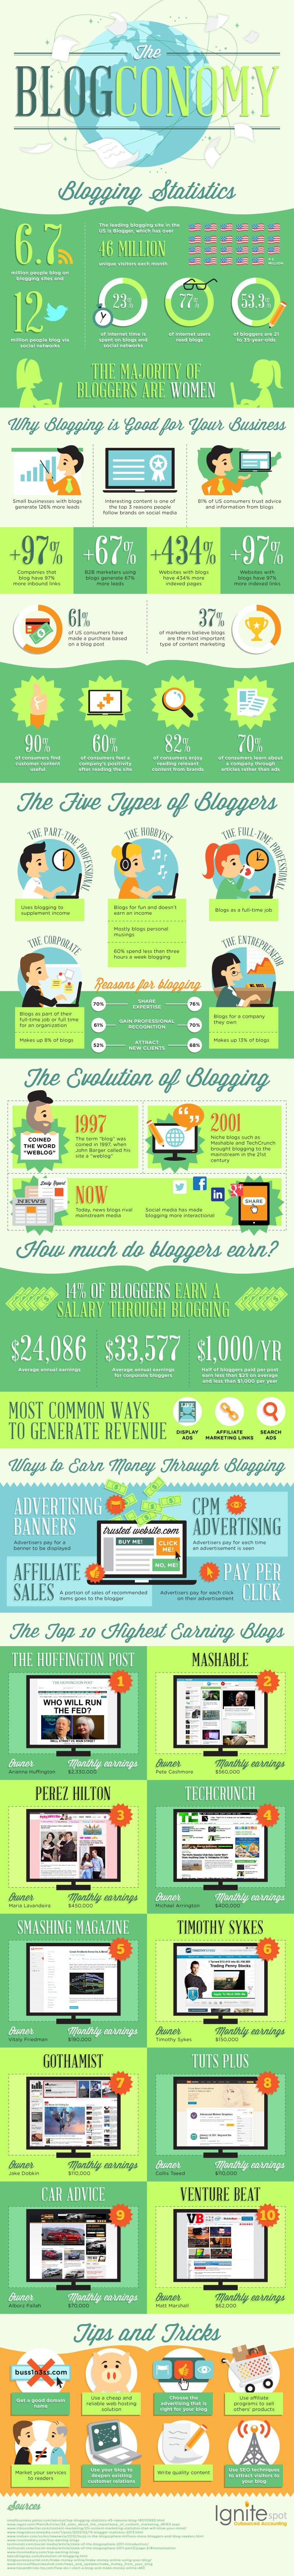 Why Blogging Is The Best Marketing Tool You Will Find [Infographic]